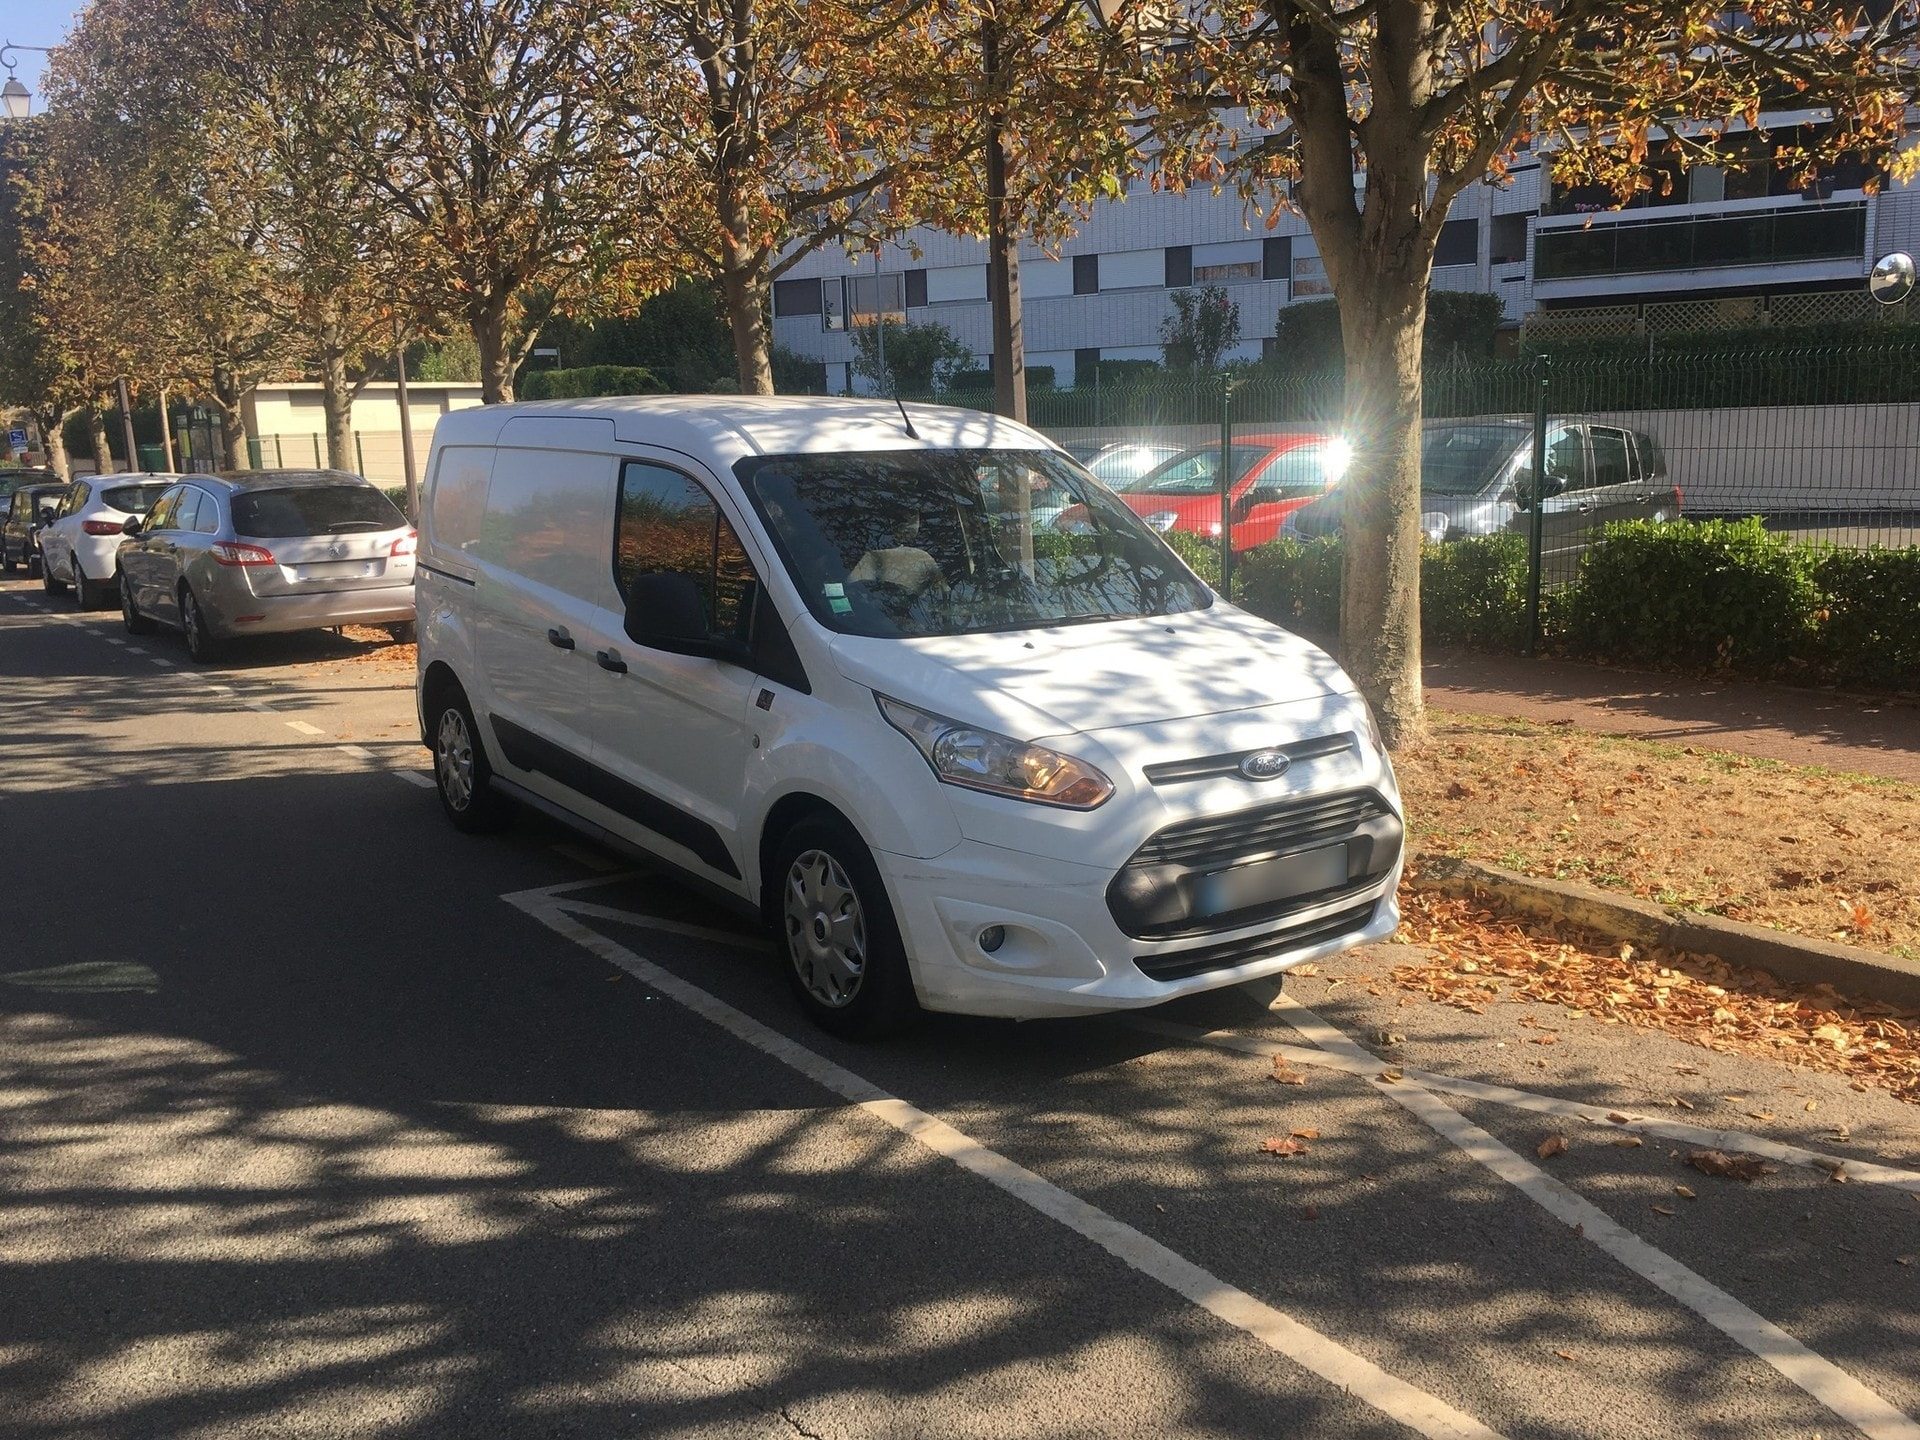 FORD TRANSIT CONNECT FOURGON 1.6 TDCI 95 L2 TREND - Carverntura